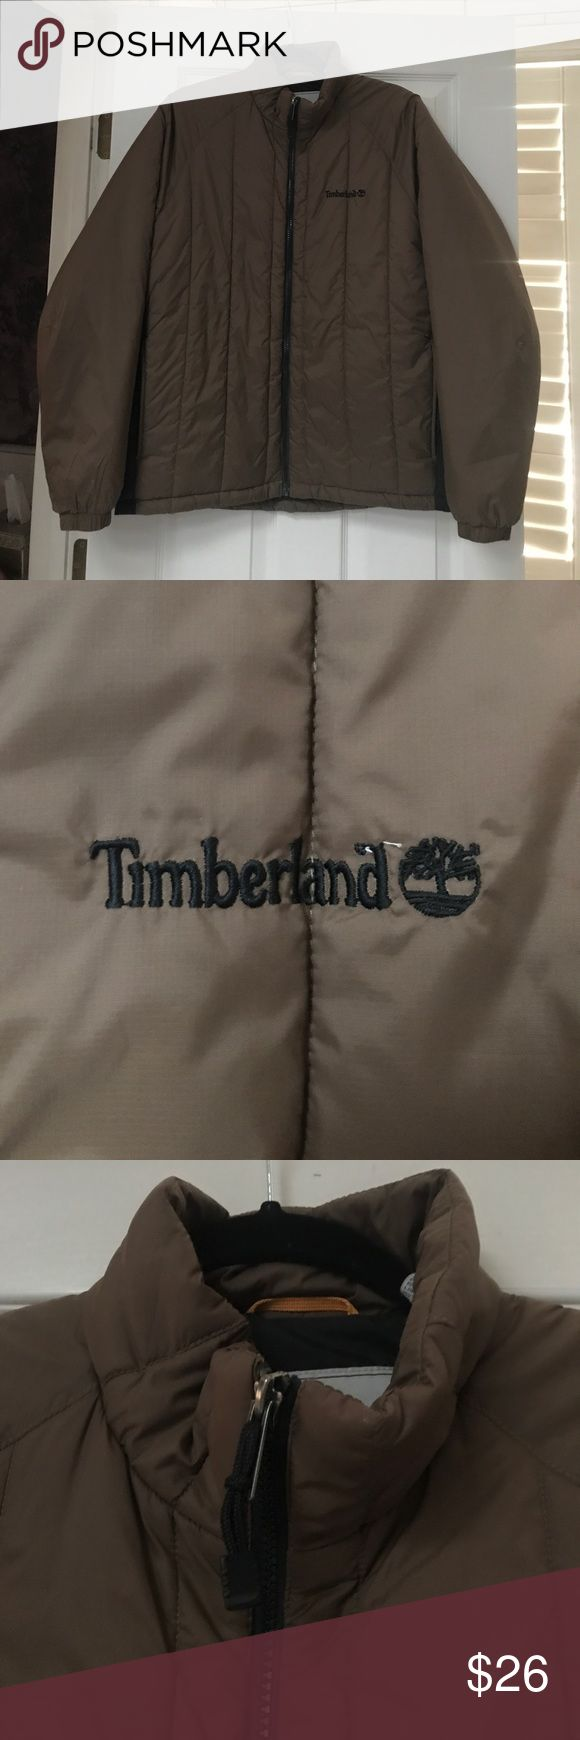 Men's Timberland Jacket Timberland, size medium jacket, polyester fill. Two pockets in front. Jacket zips all the way up. Machine washable in cold water, tumble dry low. Timberland Jackets & Coats Ski & Snowboard